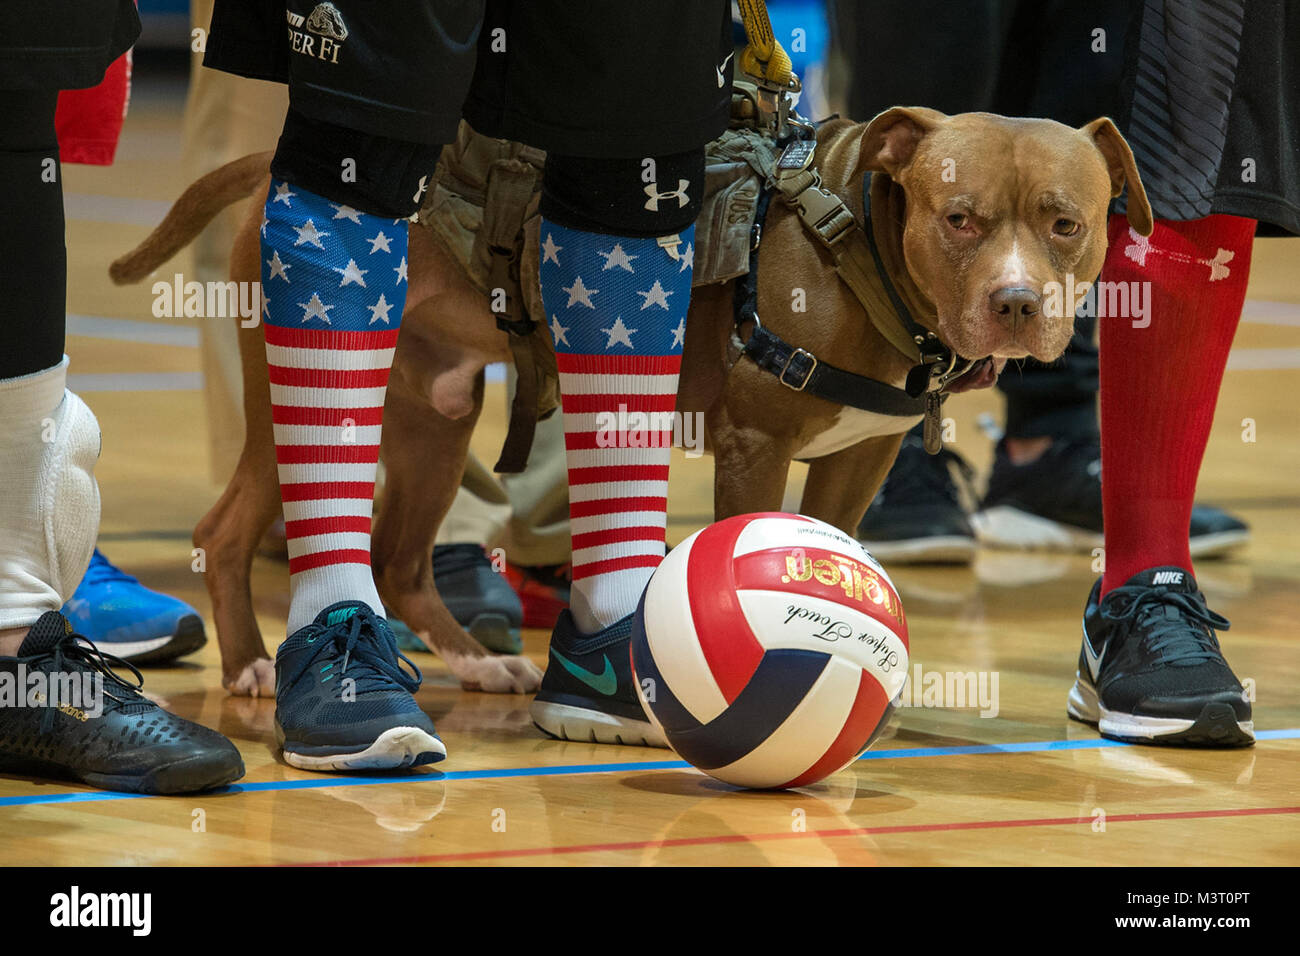 Wounded Service Dog Awards